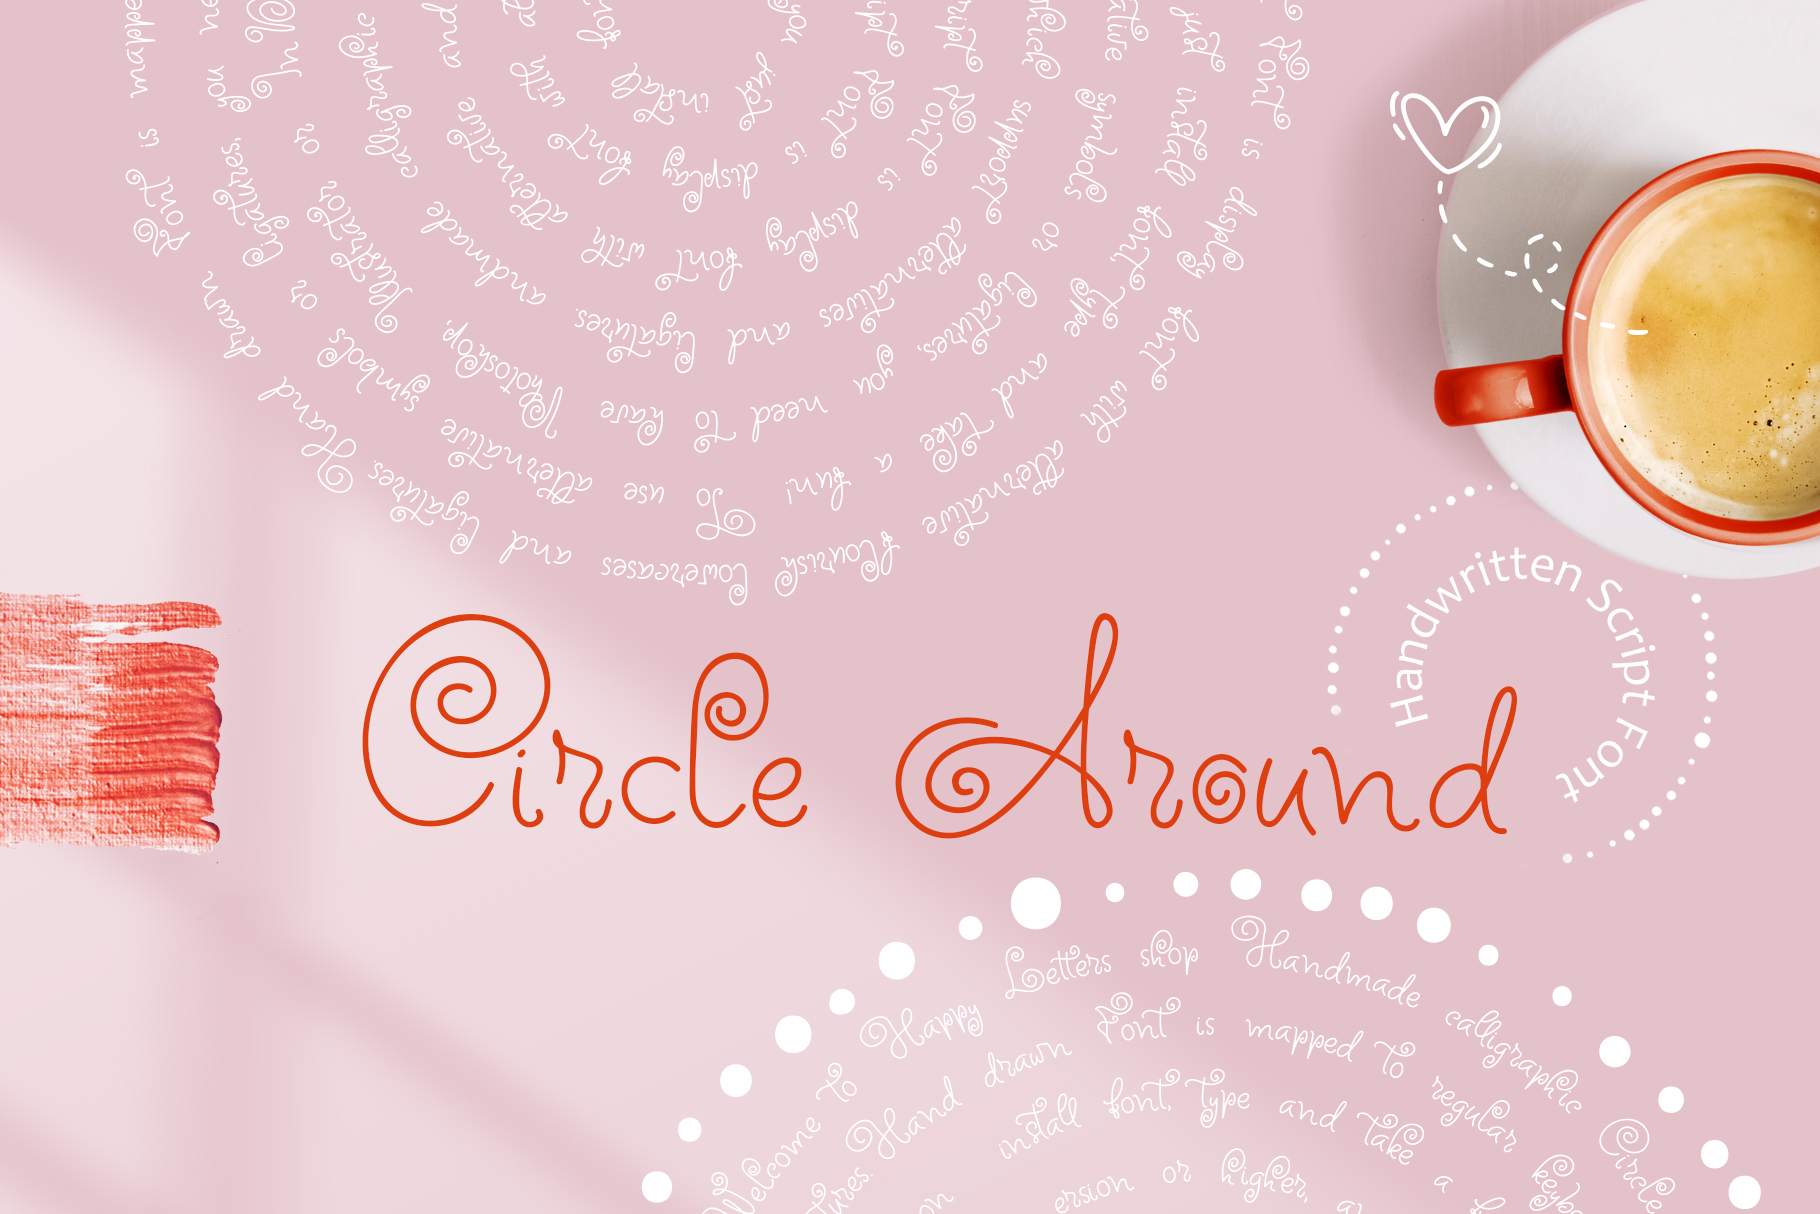 Download Free Circle Around Font By Happy Letters Creative Fabrica for Cricut Explore, Silhouette and other cutting machines.